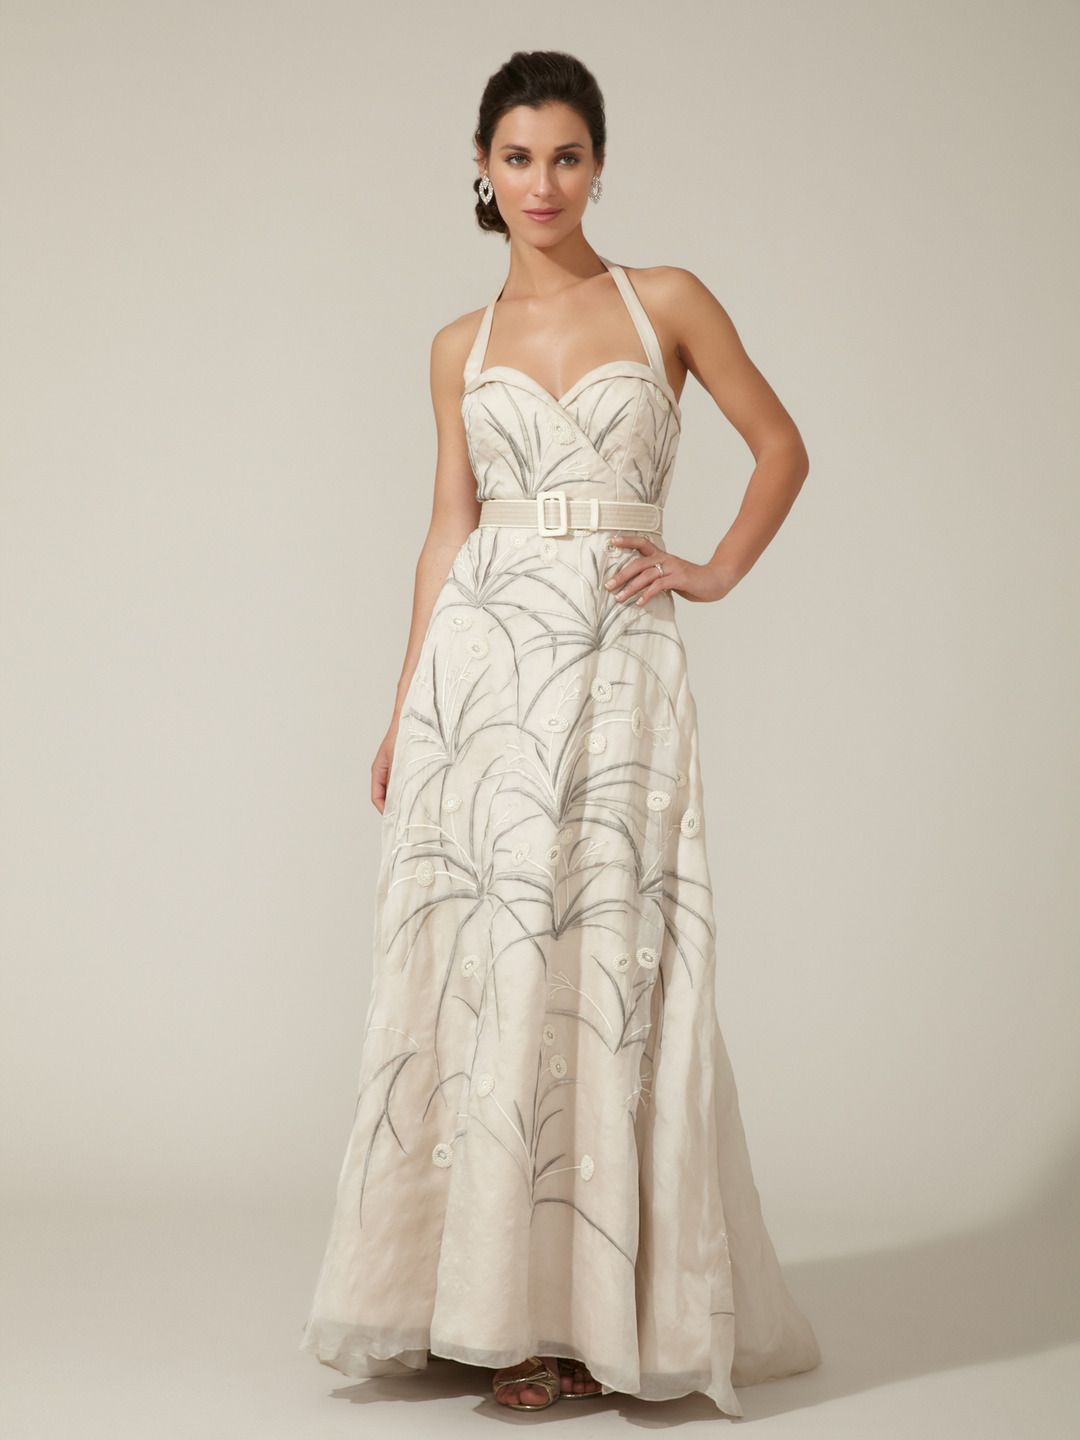 Scottish wedding dresses  Woven Embroidered Detachable Train Gown by BHLDN at Gilt  Spring